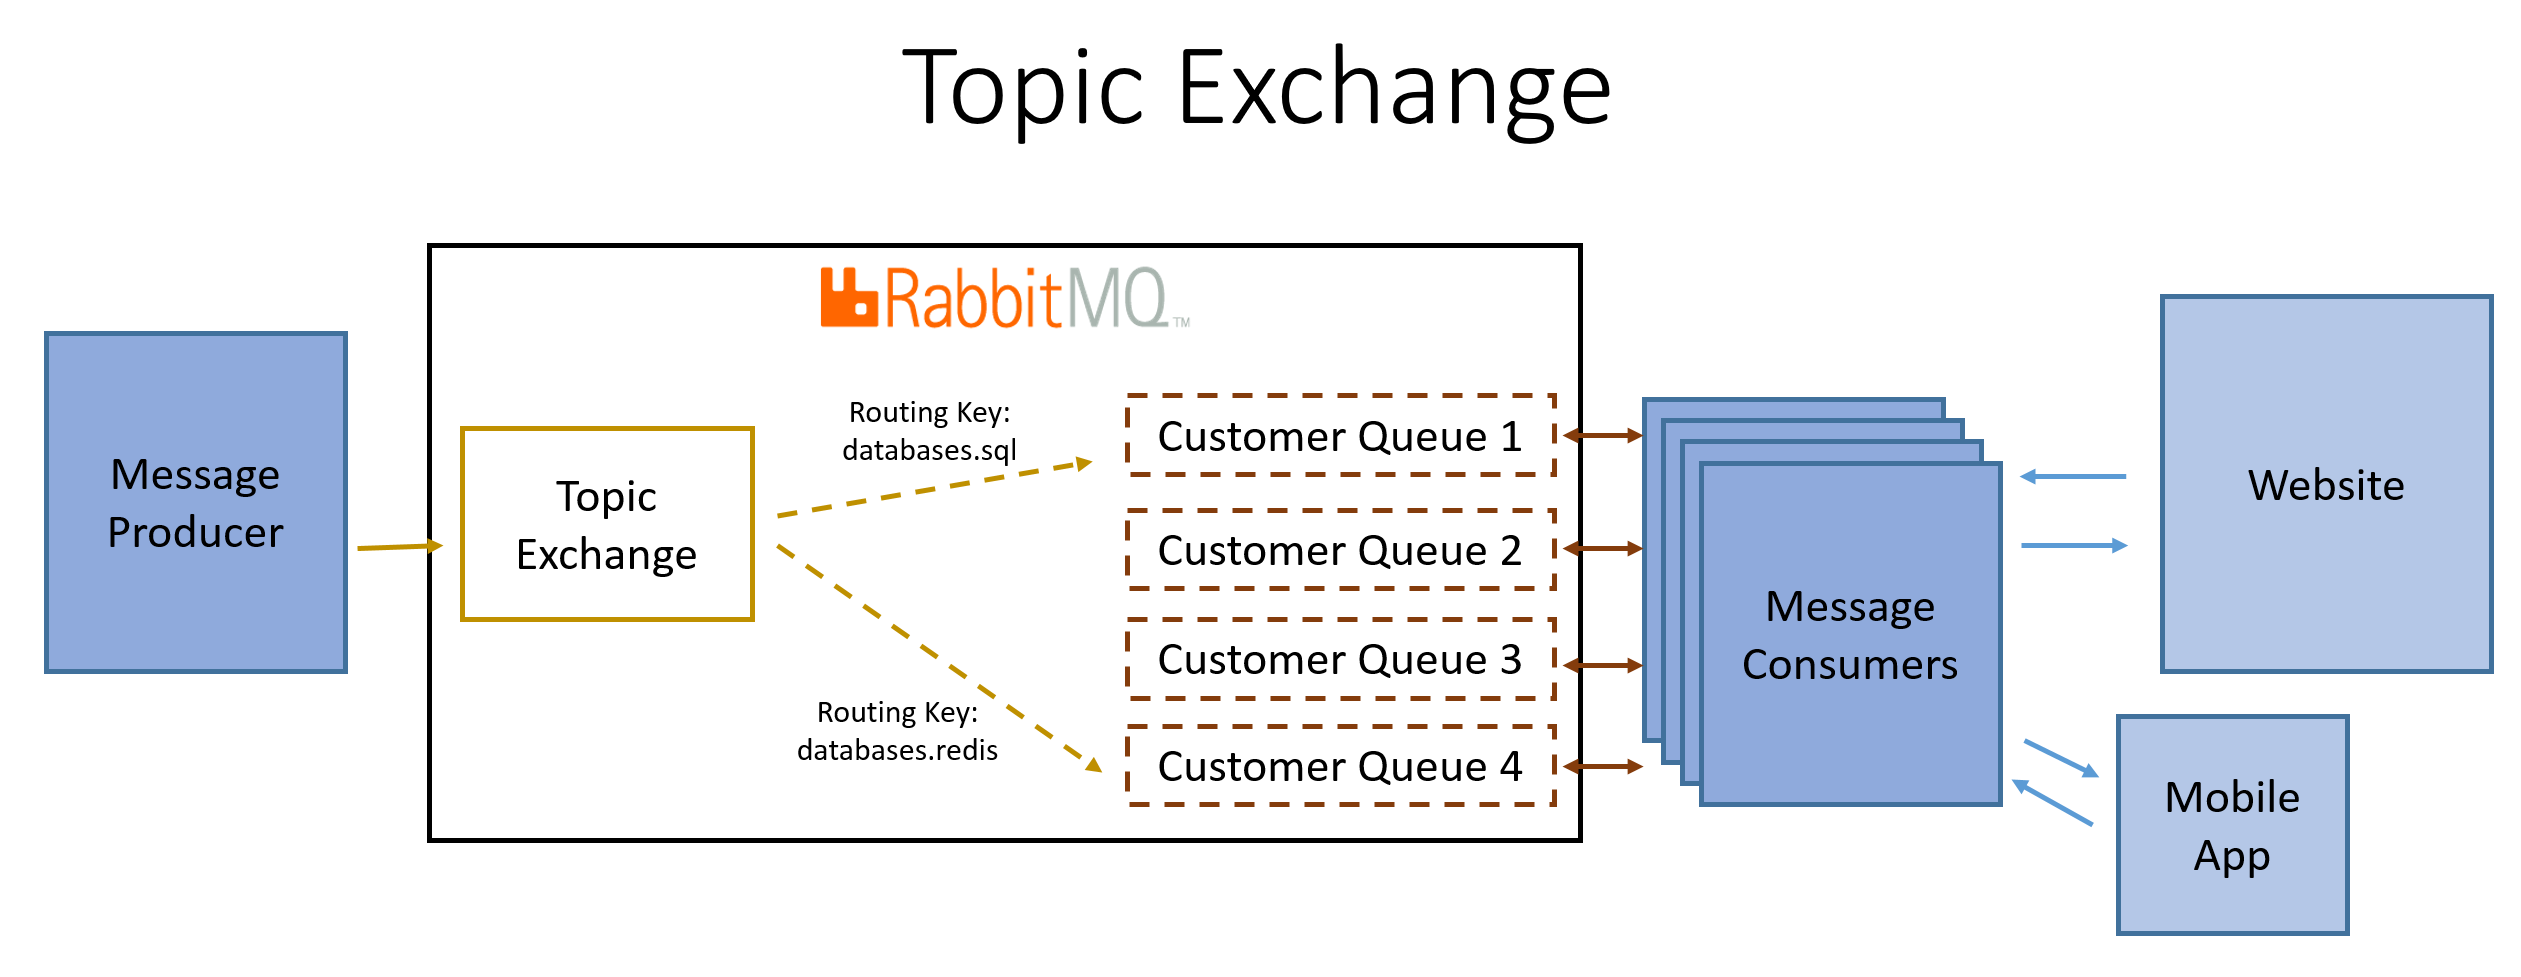 Configuring Rabbitmq Exchanges Queues And Bindings Part 1 Incase Anyone Is Interested In Fitting Some Here My Wiring Diagram Now Weve Got Content Corps Set Up But As We Can See From Our Conceptual Diagrams Need A Place To Route Messages The